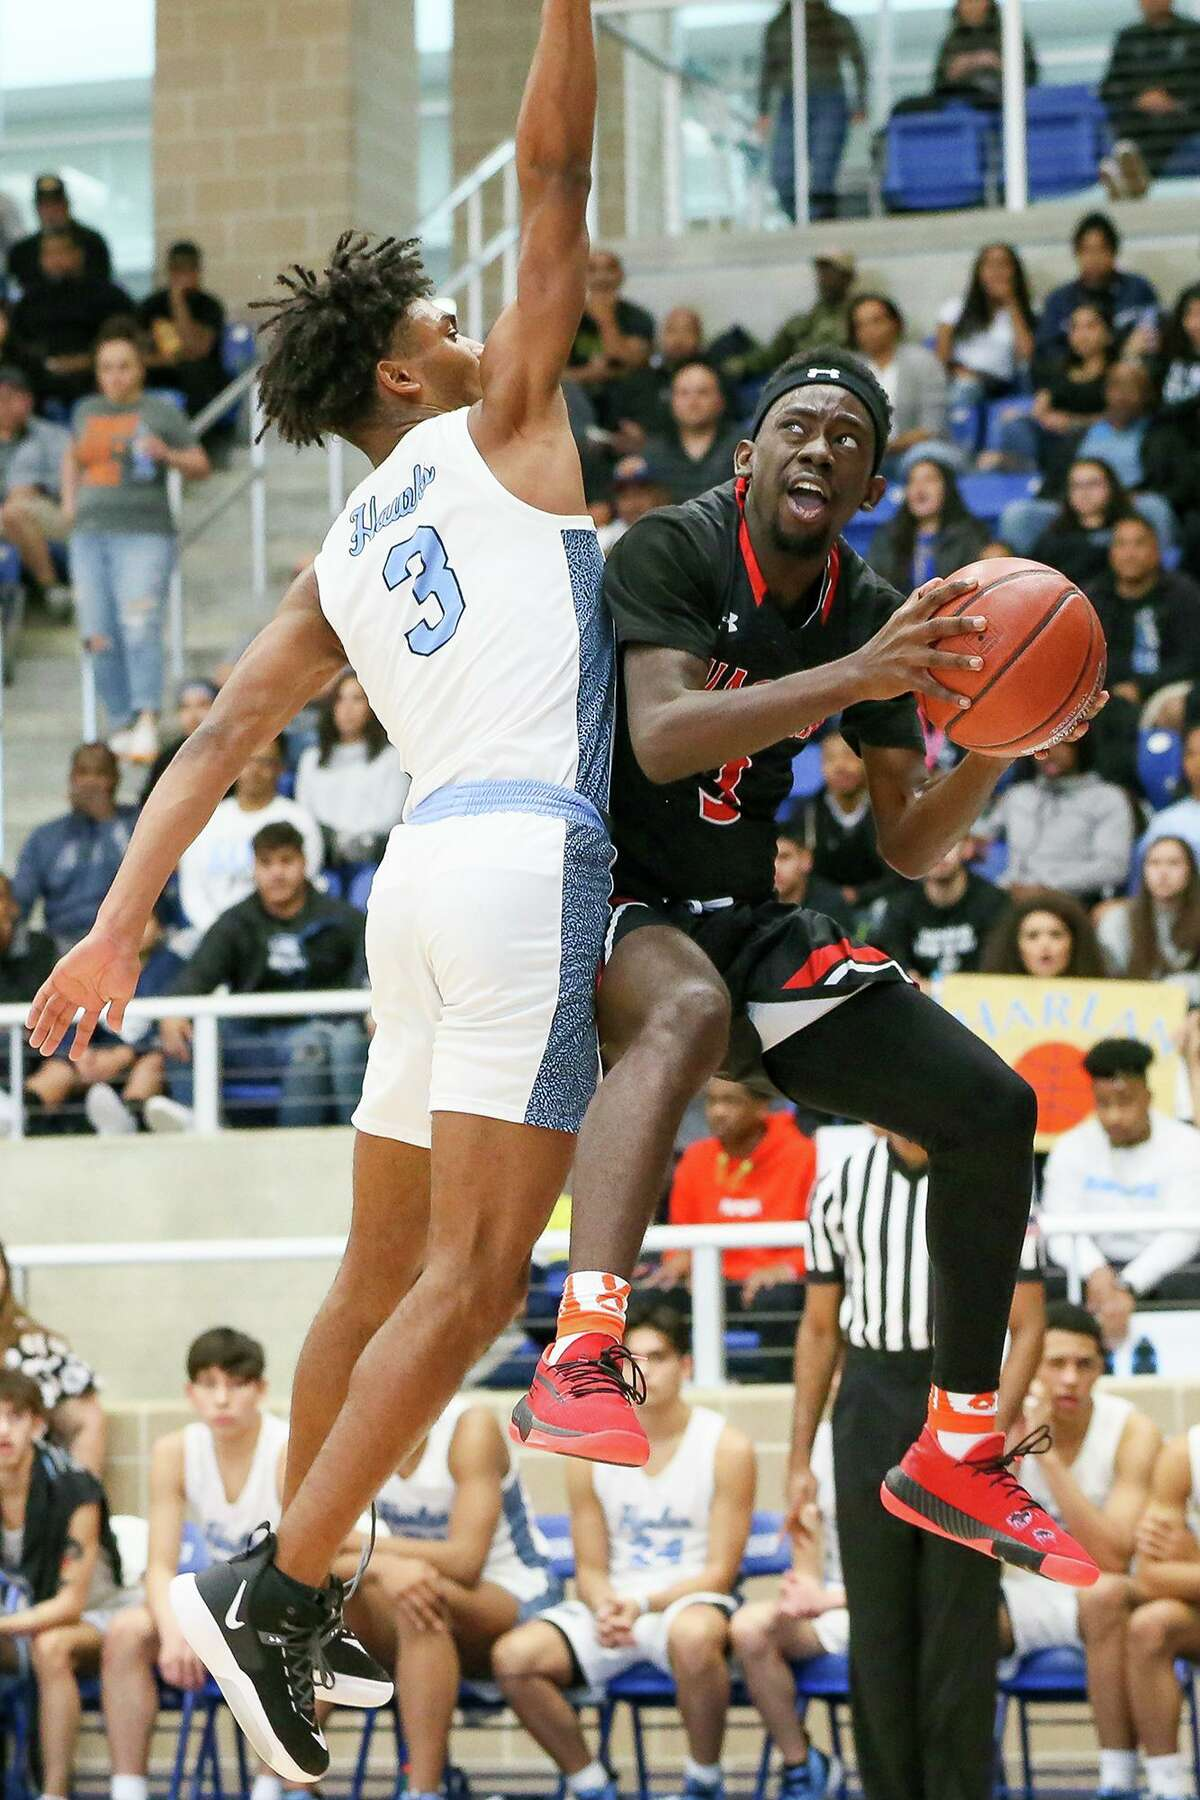 Wagner's Braelon Seals, right, looks to the basket as Harlan's Dre Spriggs defends in the first half of their Class 5A regional final game at Northside Gym on March 7, 2020.